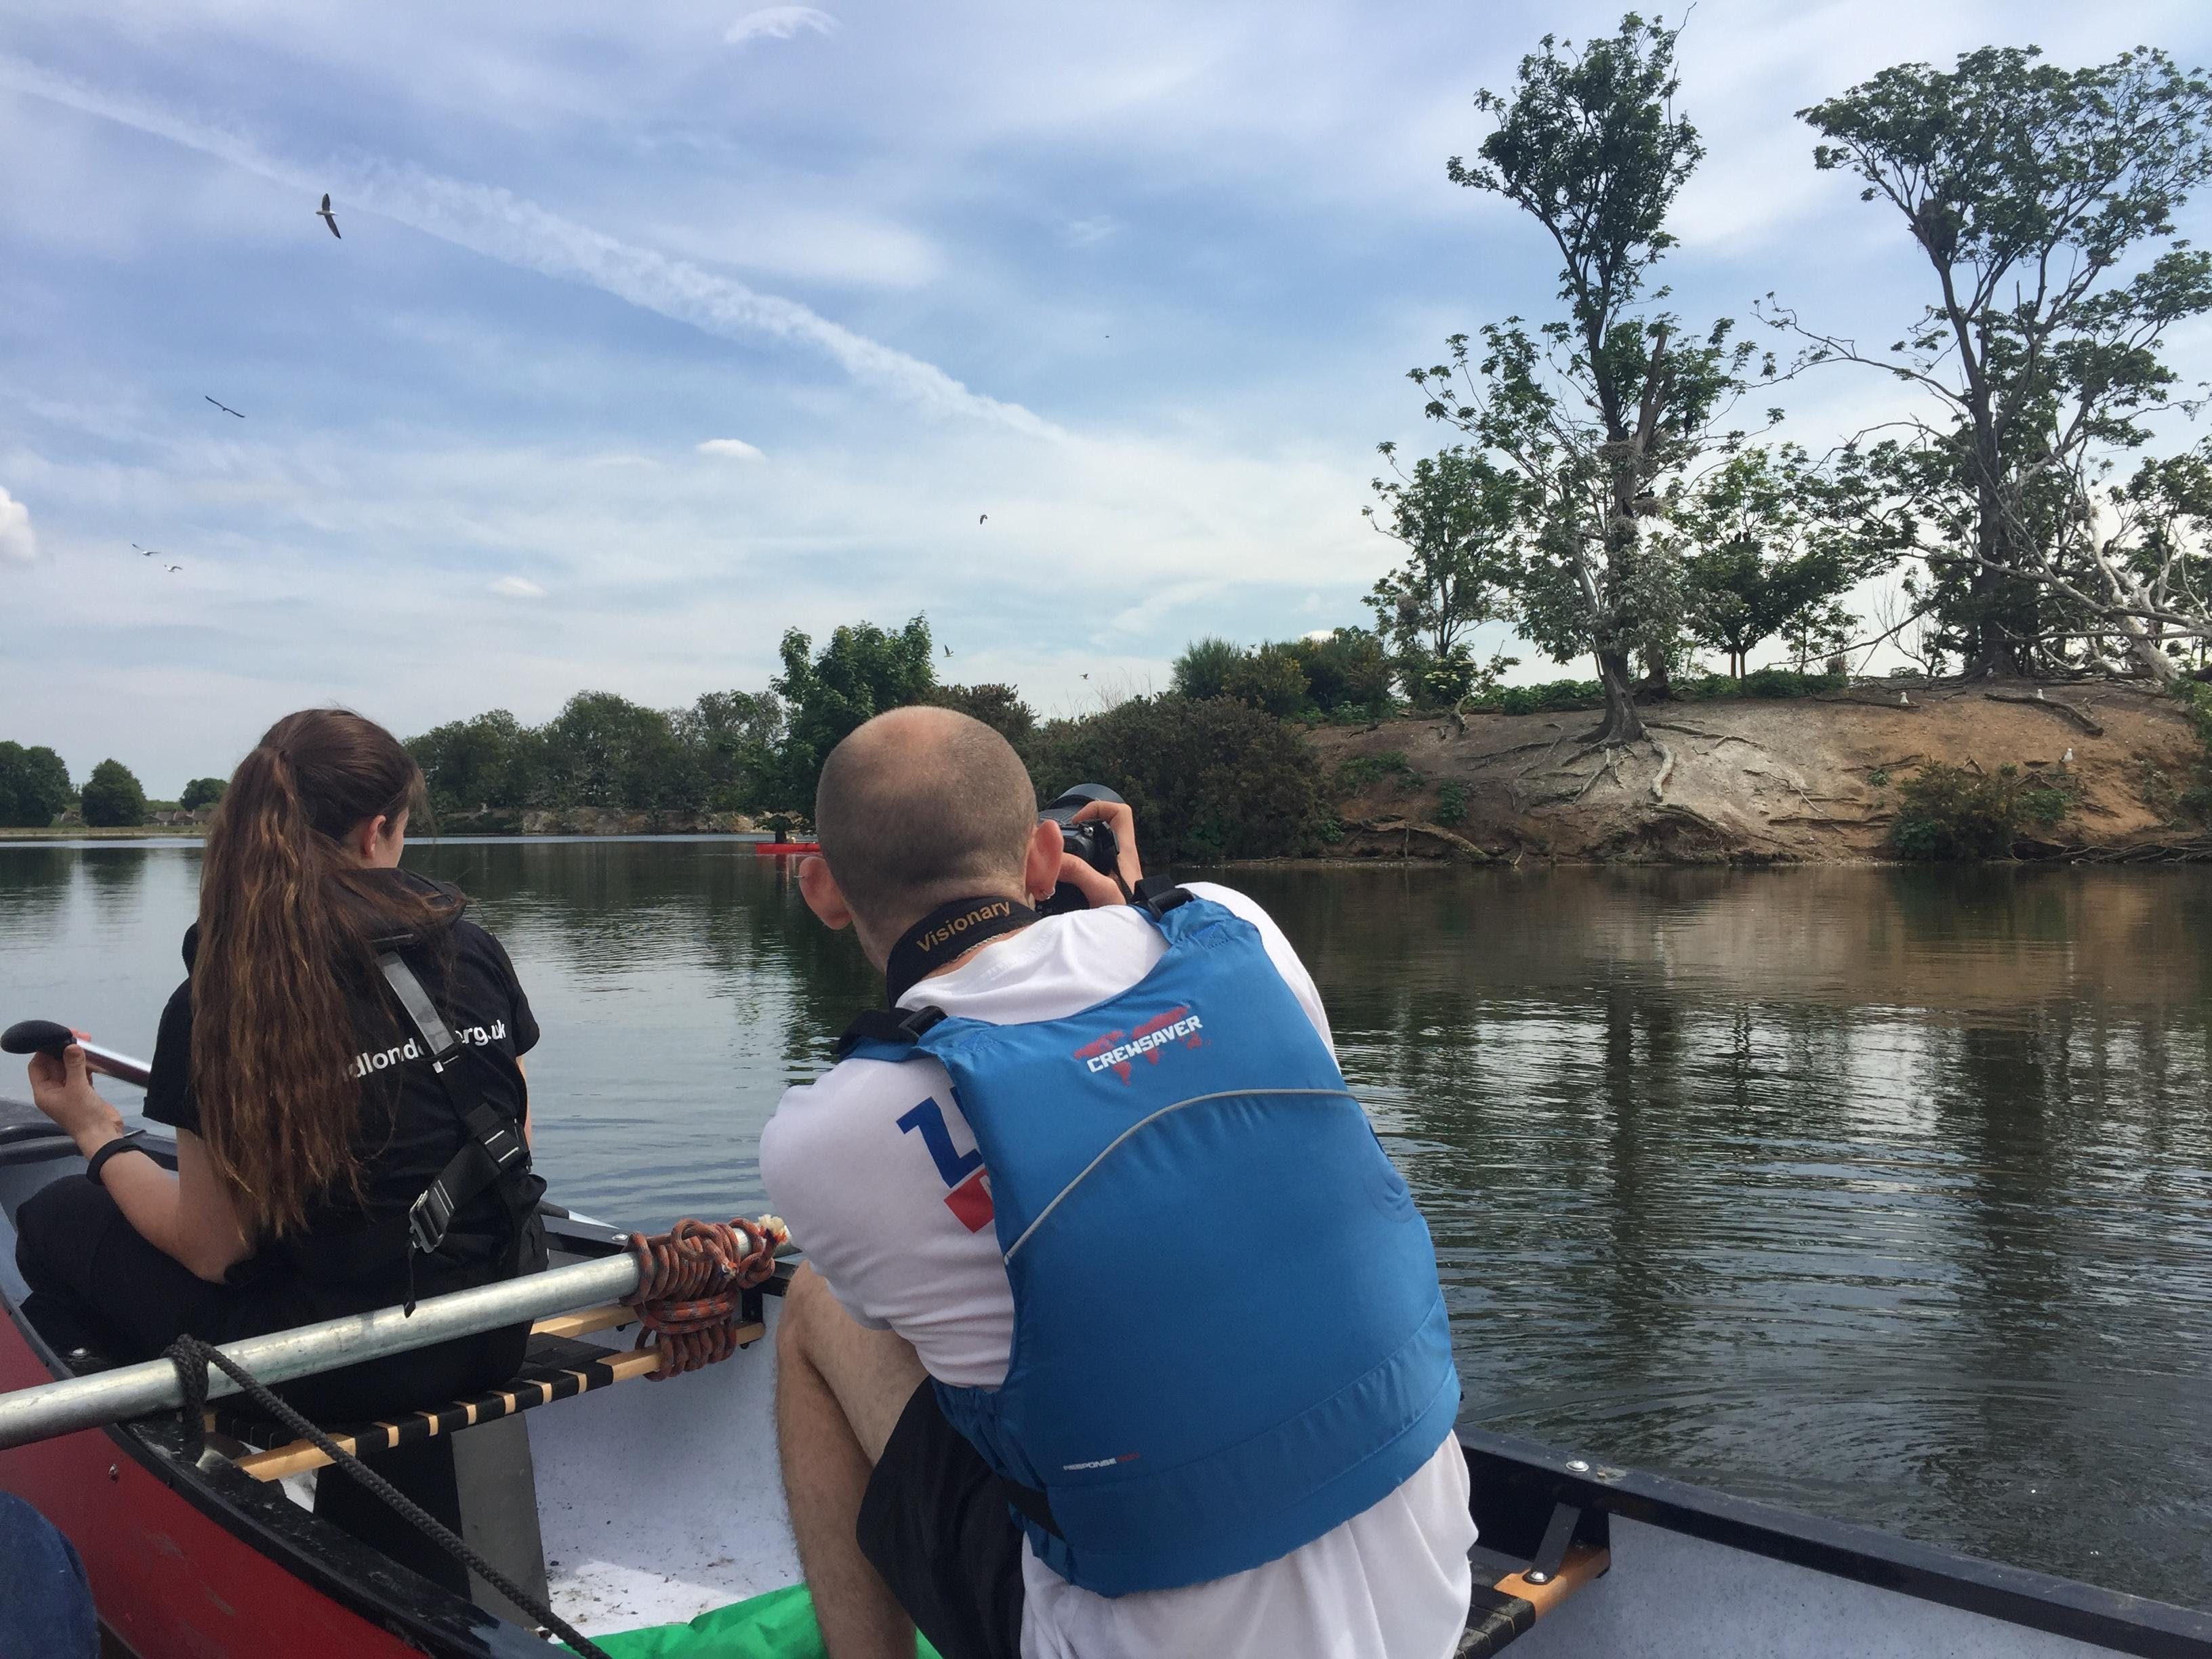 Practical workday, Walthamstow Wetlands, Weds 19th June 2019 with London Wildlife Trust